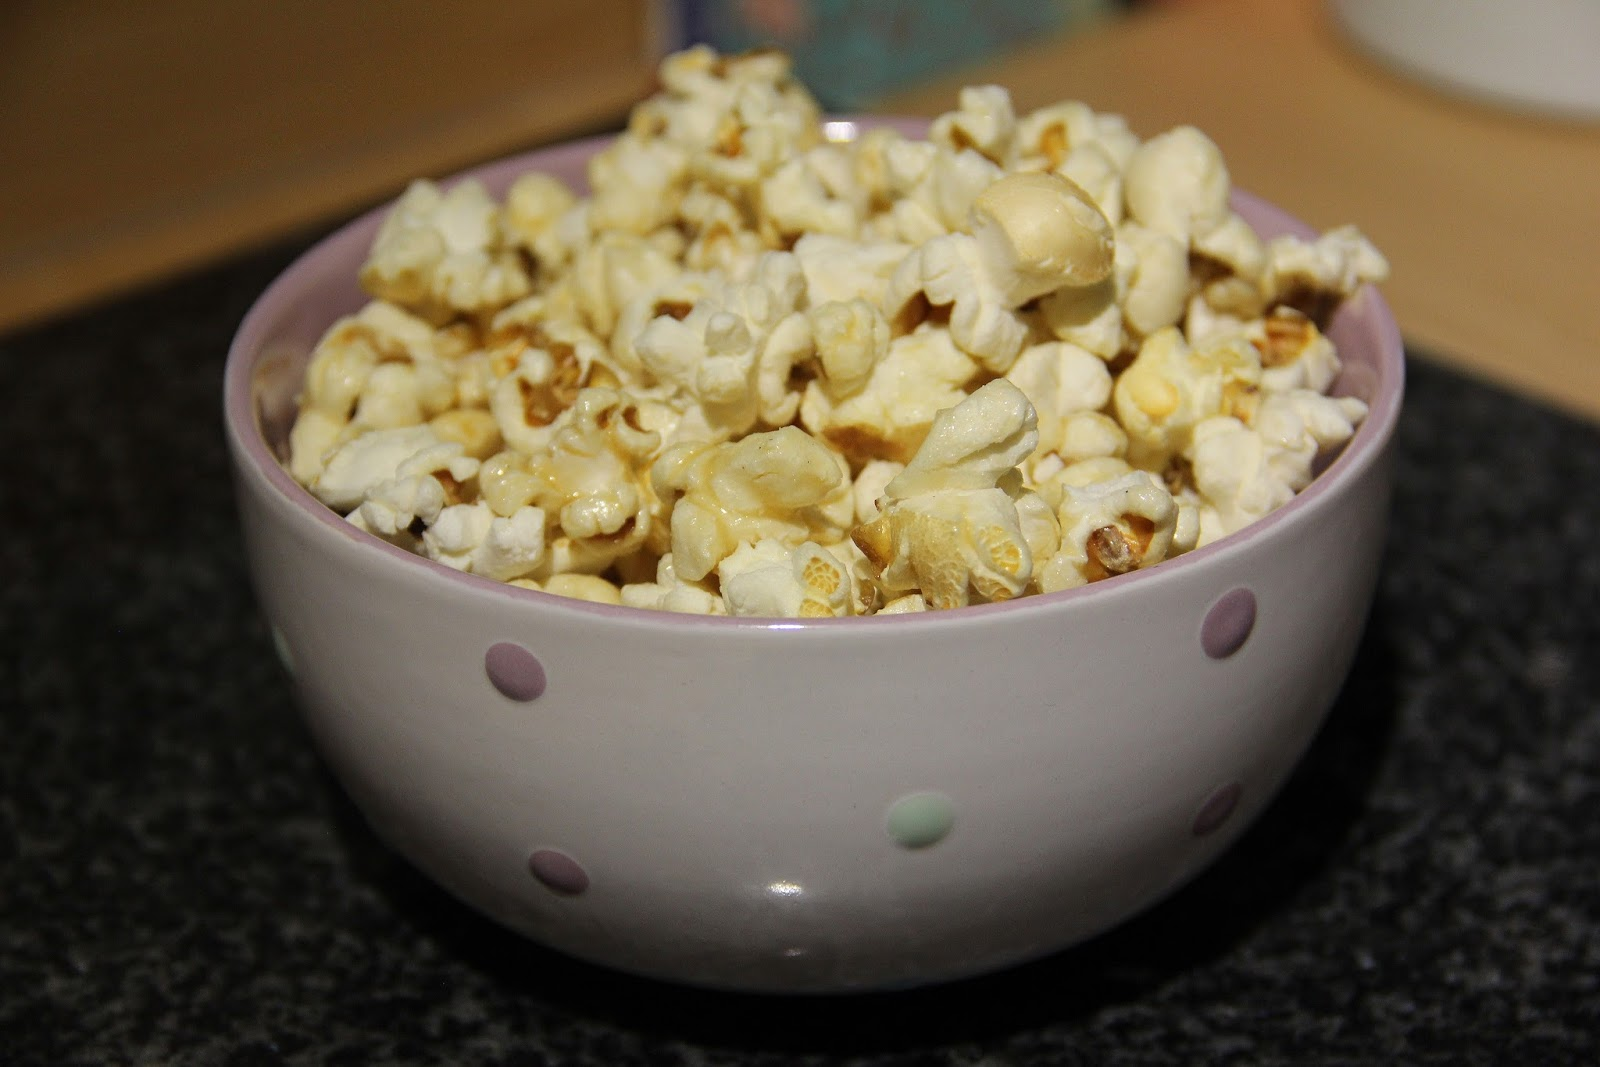 The perfect snack for a movie night.